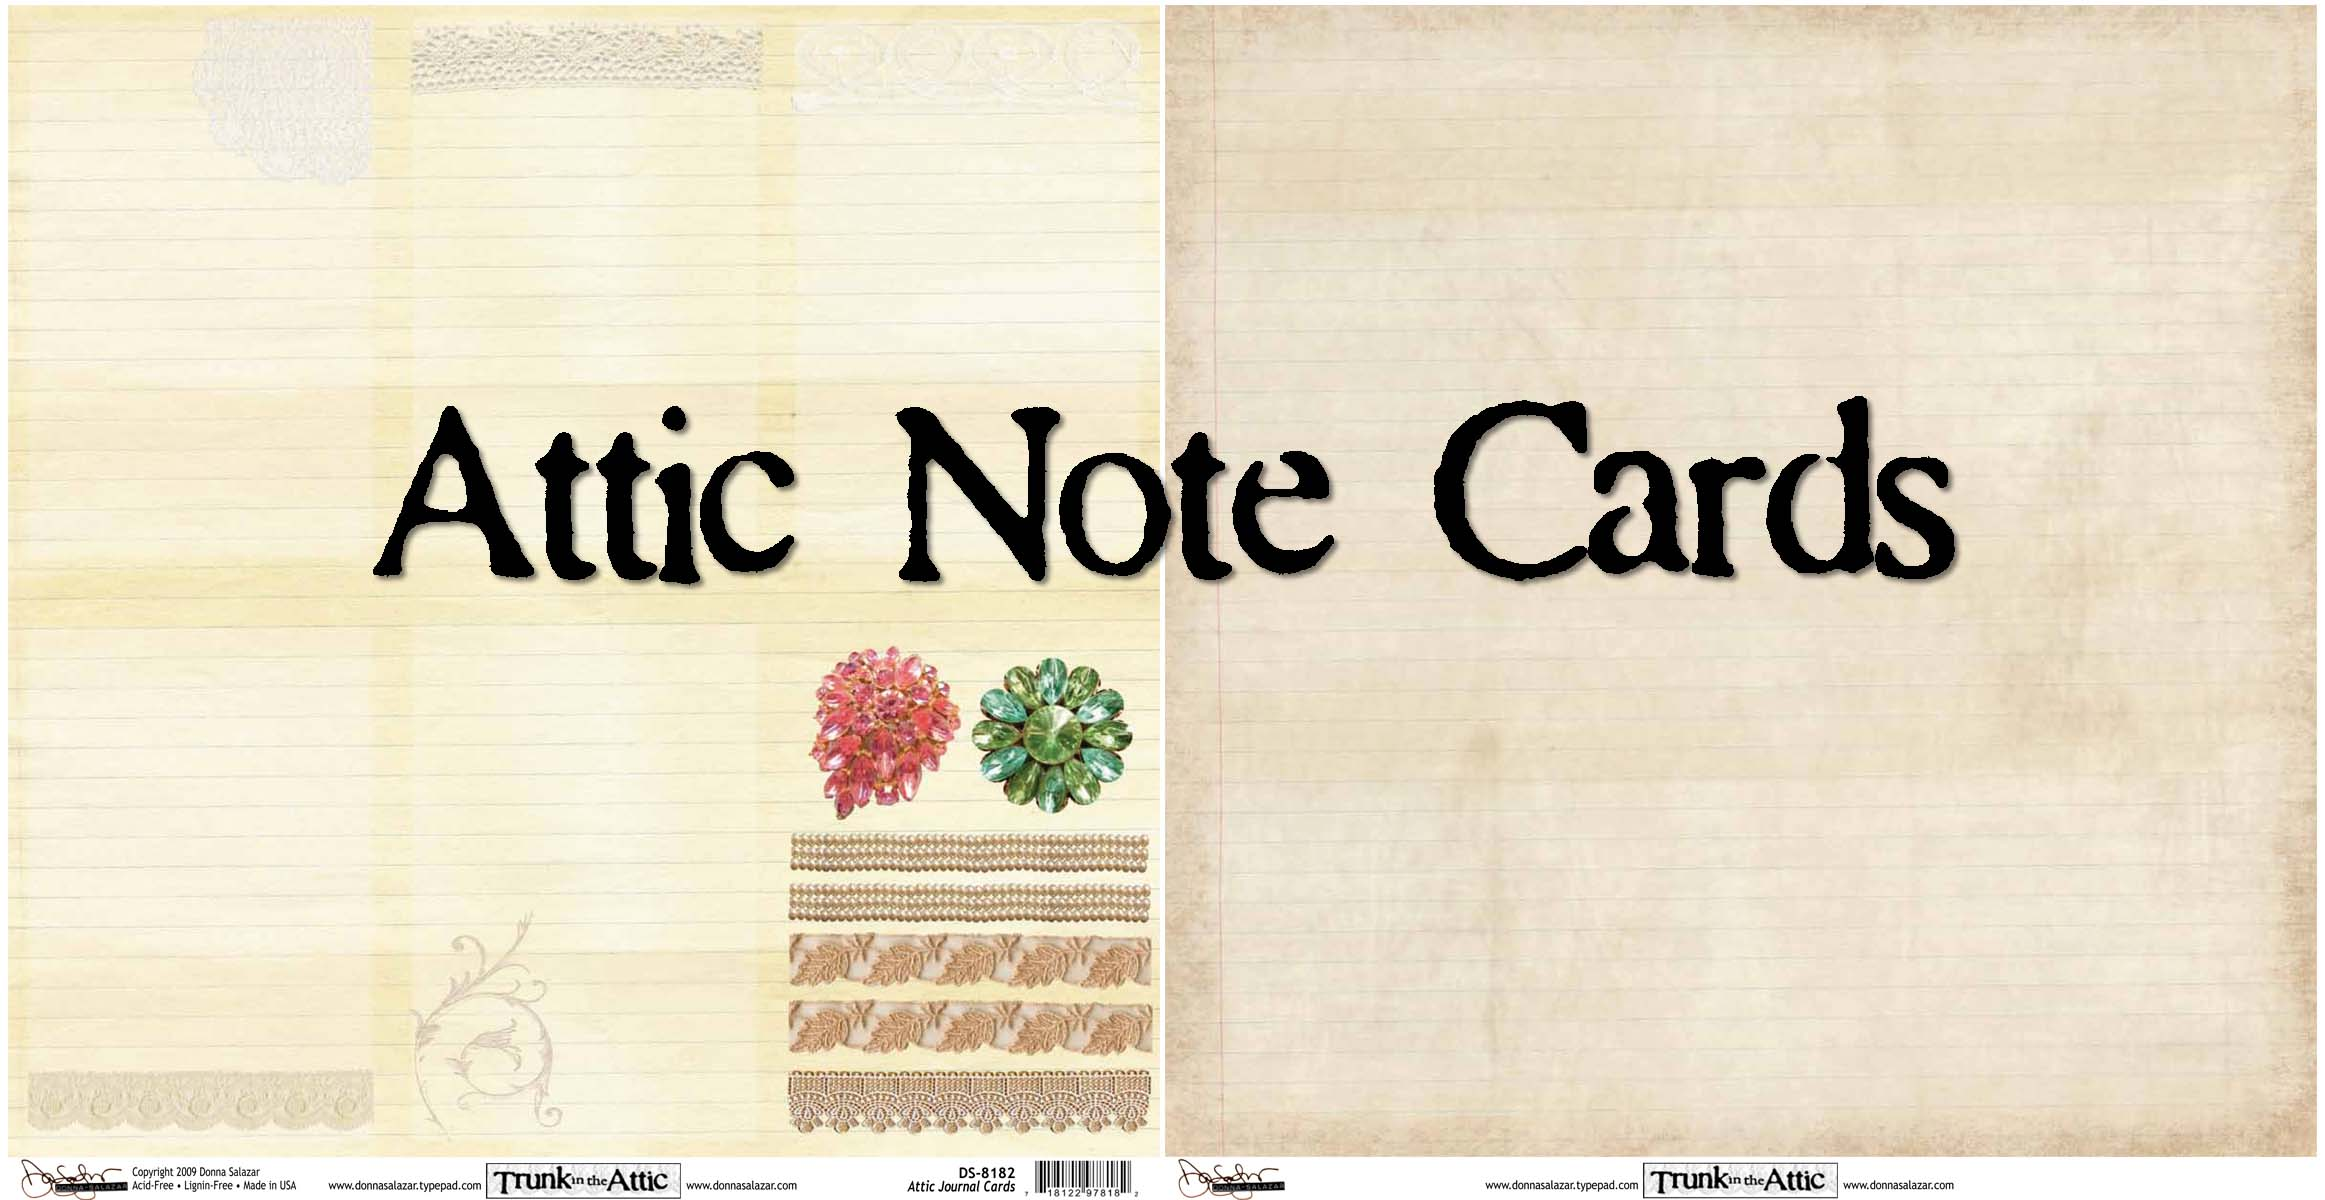 Attic note cards